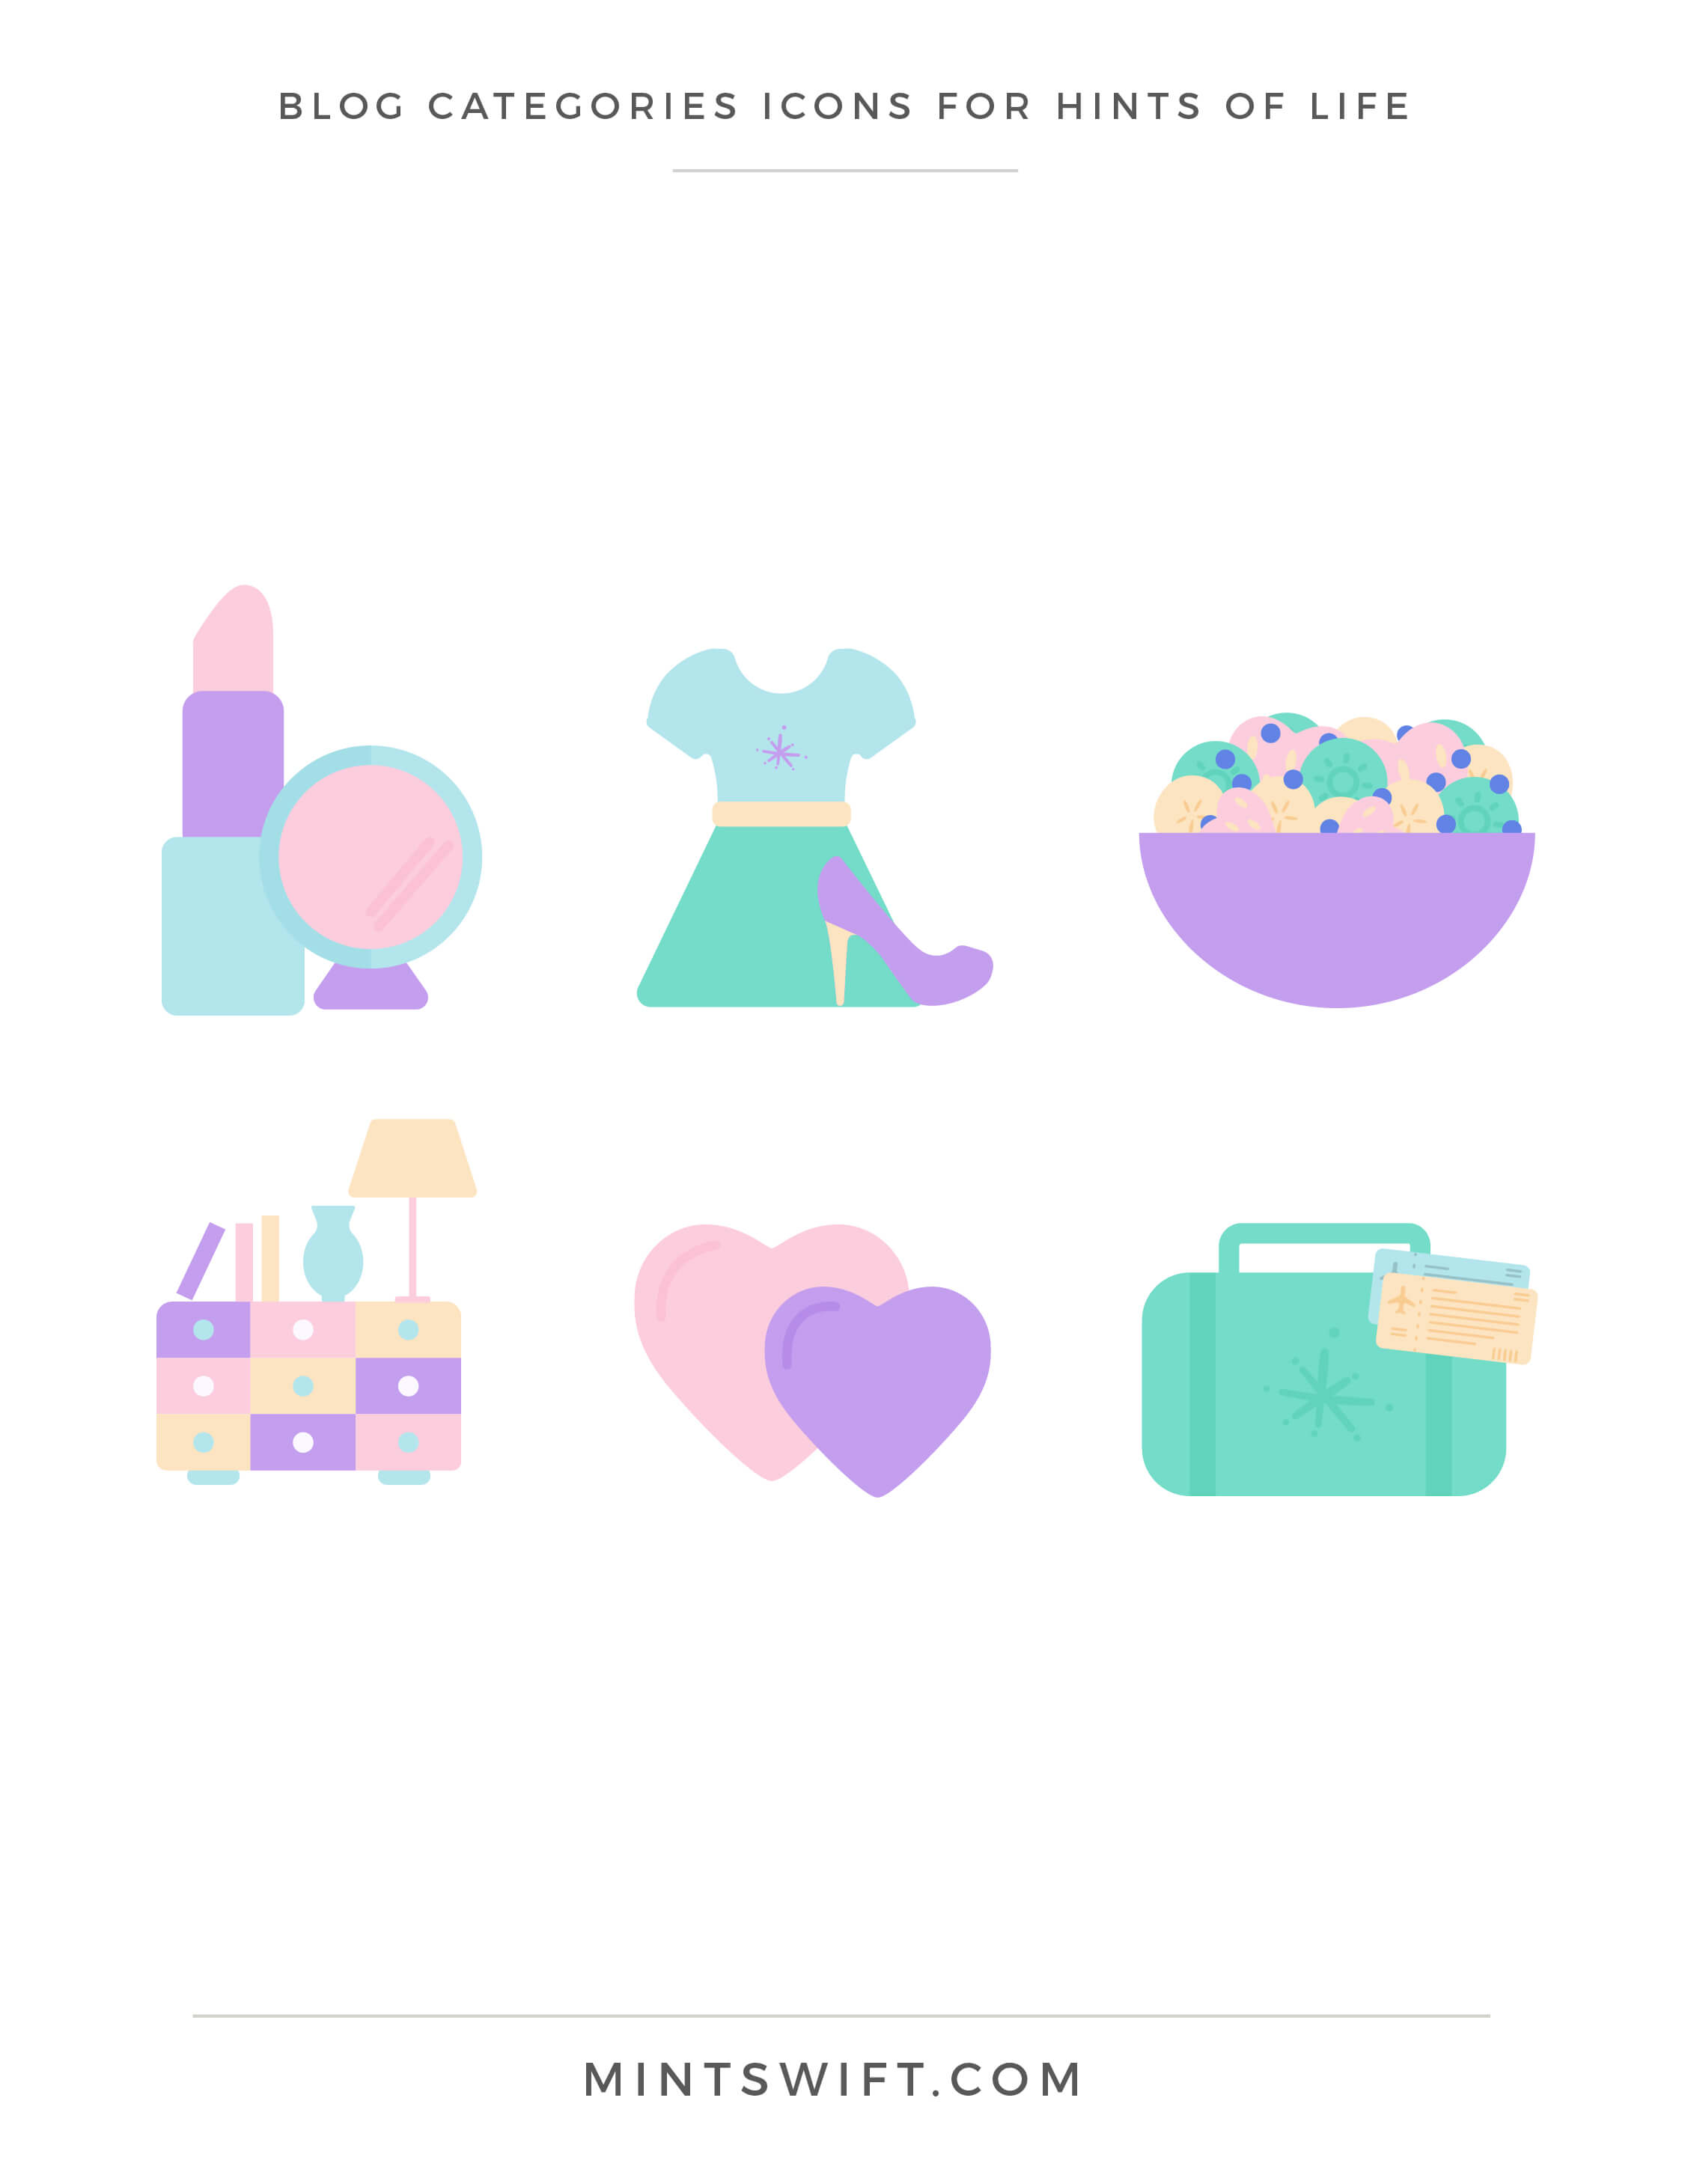 Hints of Life - Blog Categories Icons - Brand Design Package - MintSwift